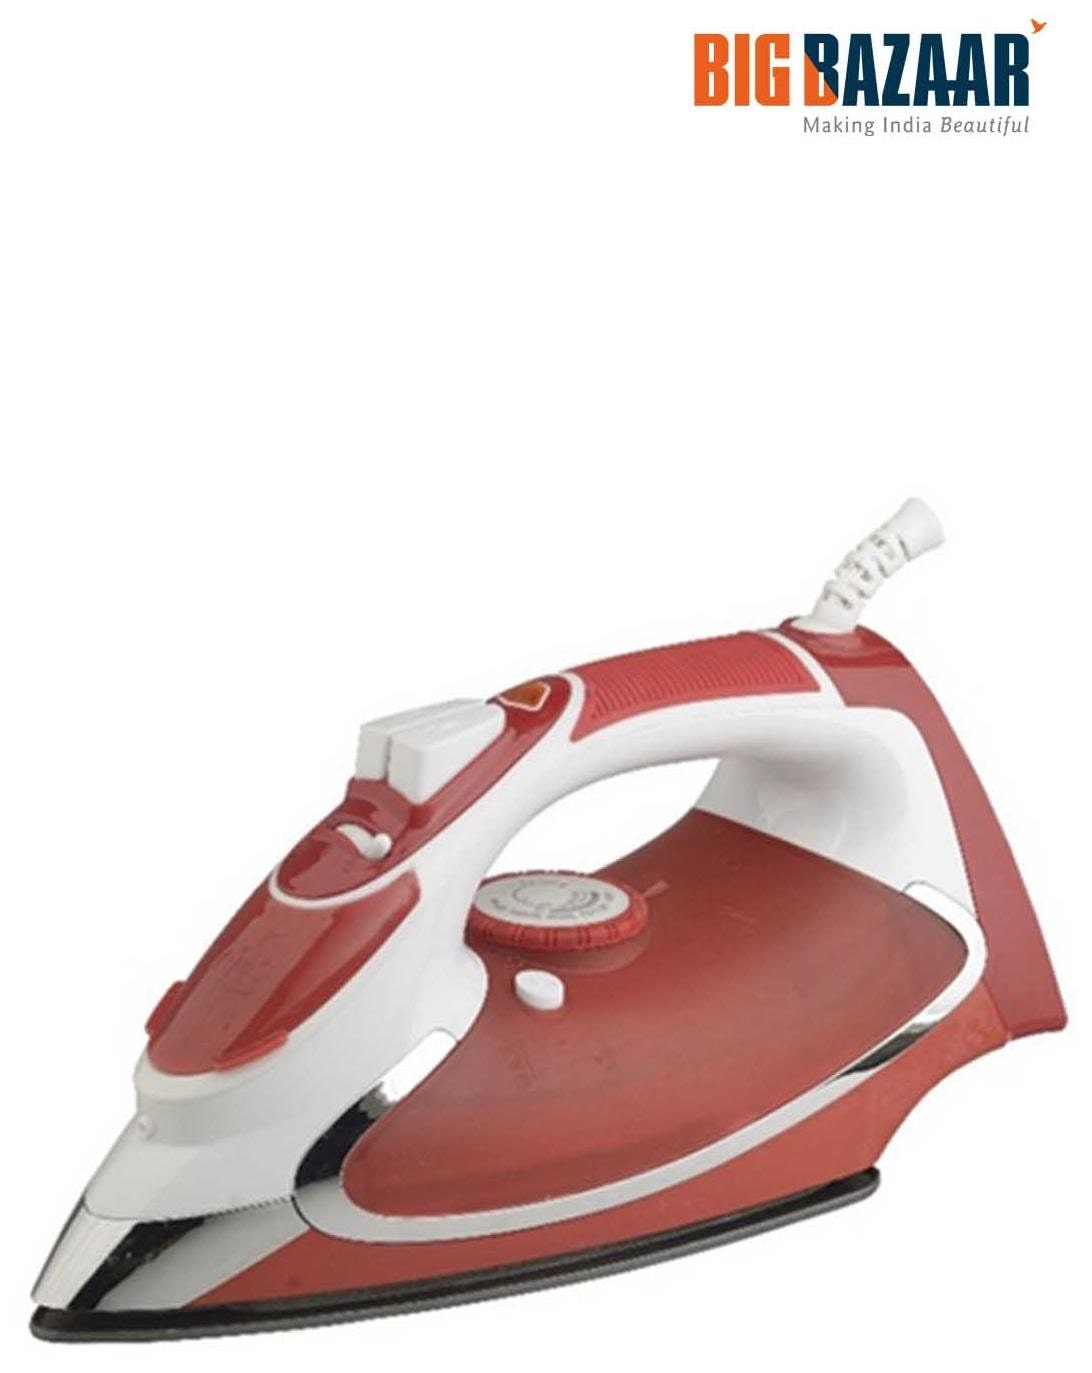 Koryo By Big Bazaar Steam Iron KSW 37X Red